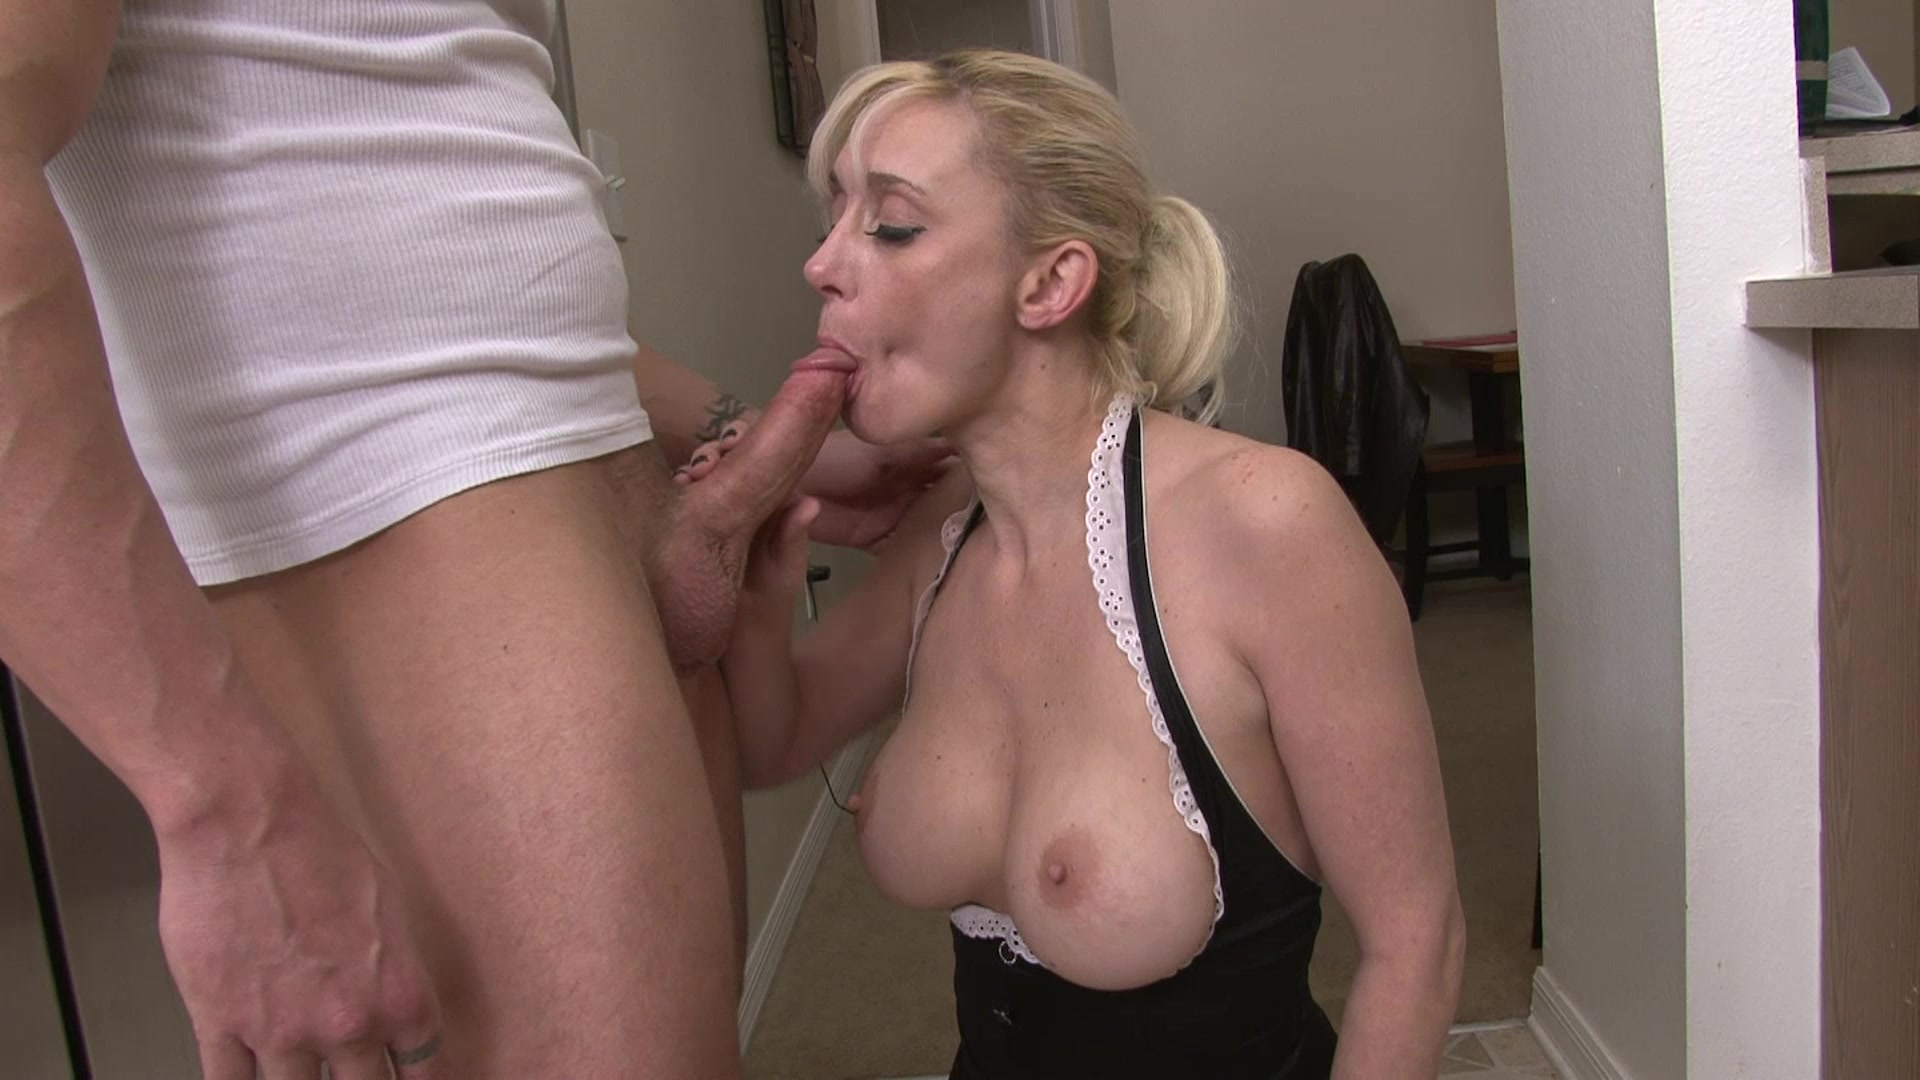 Blonde Beauty Deep Throats a Hard Cock Before Cum is Drenched On Her